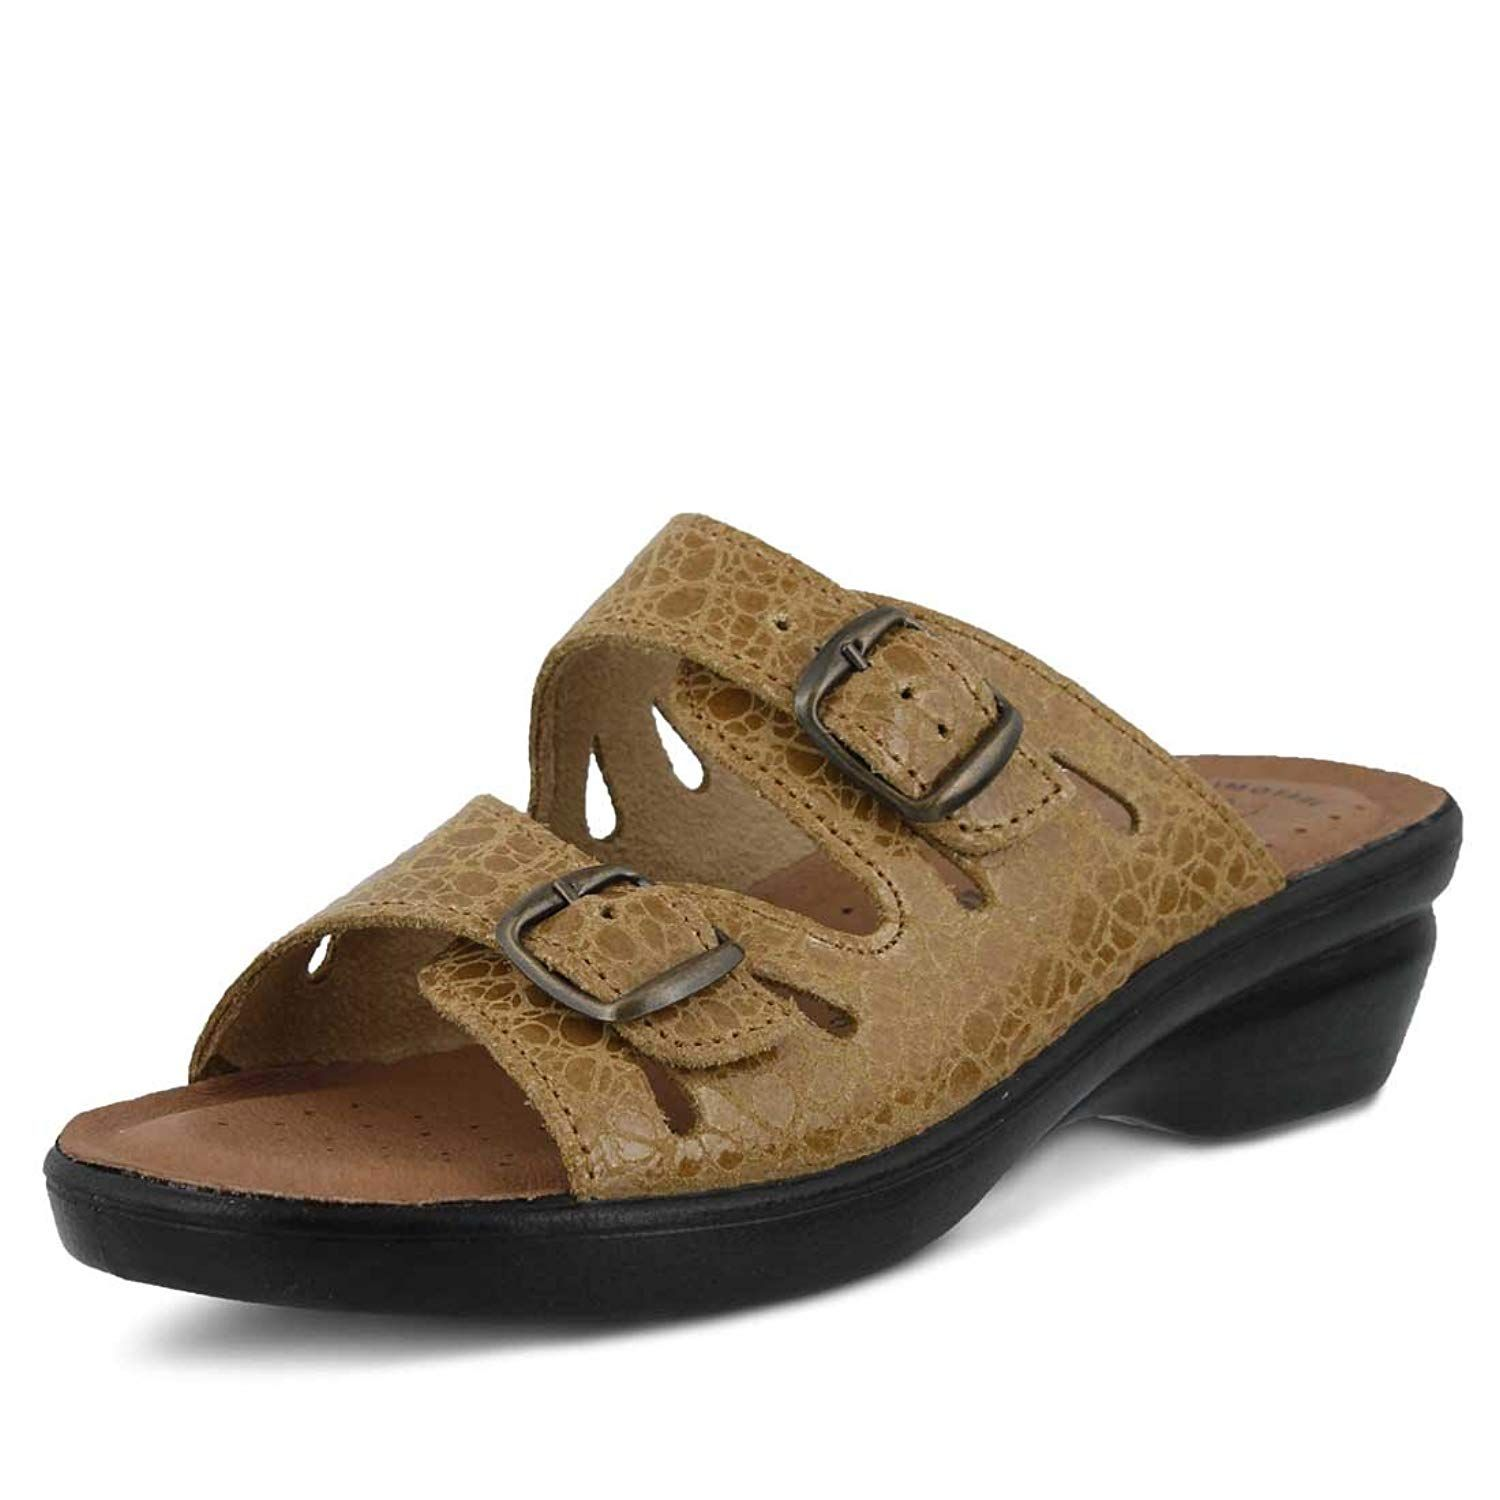 Flexus Women's Footstep Sandals >>> To view further for